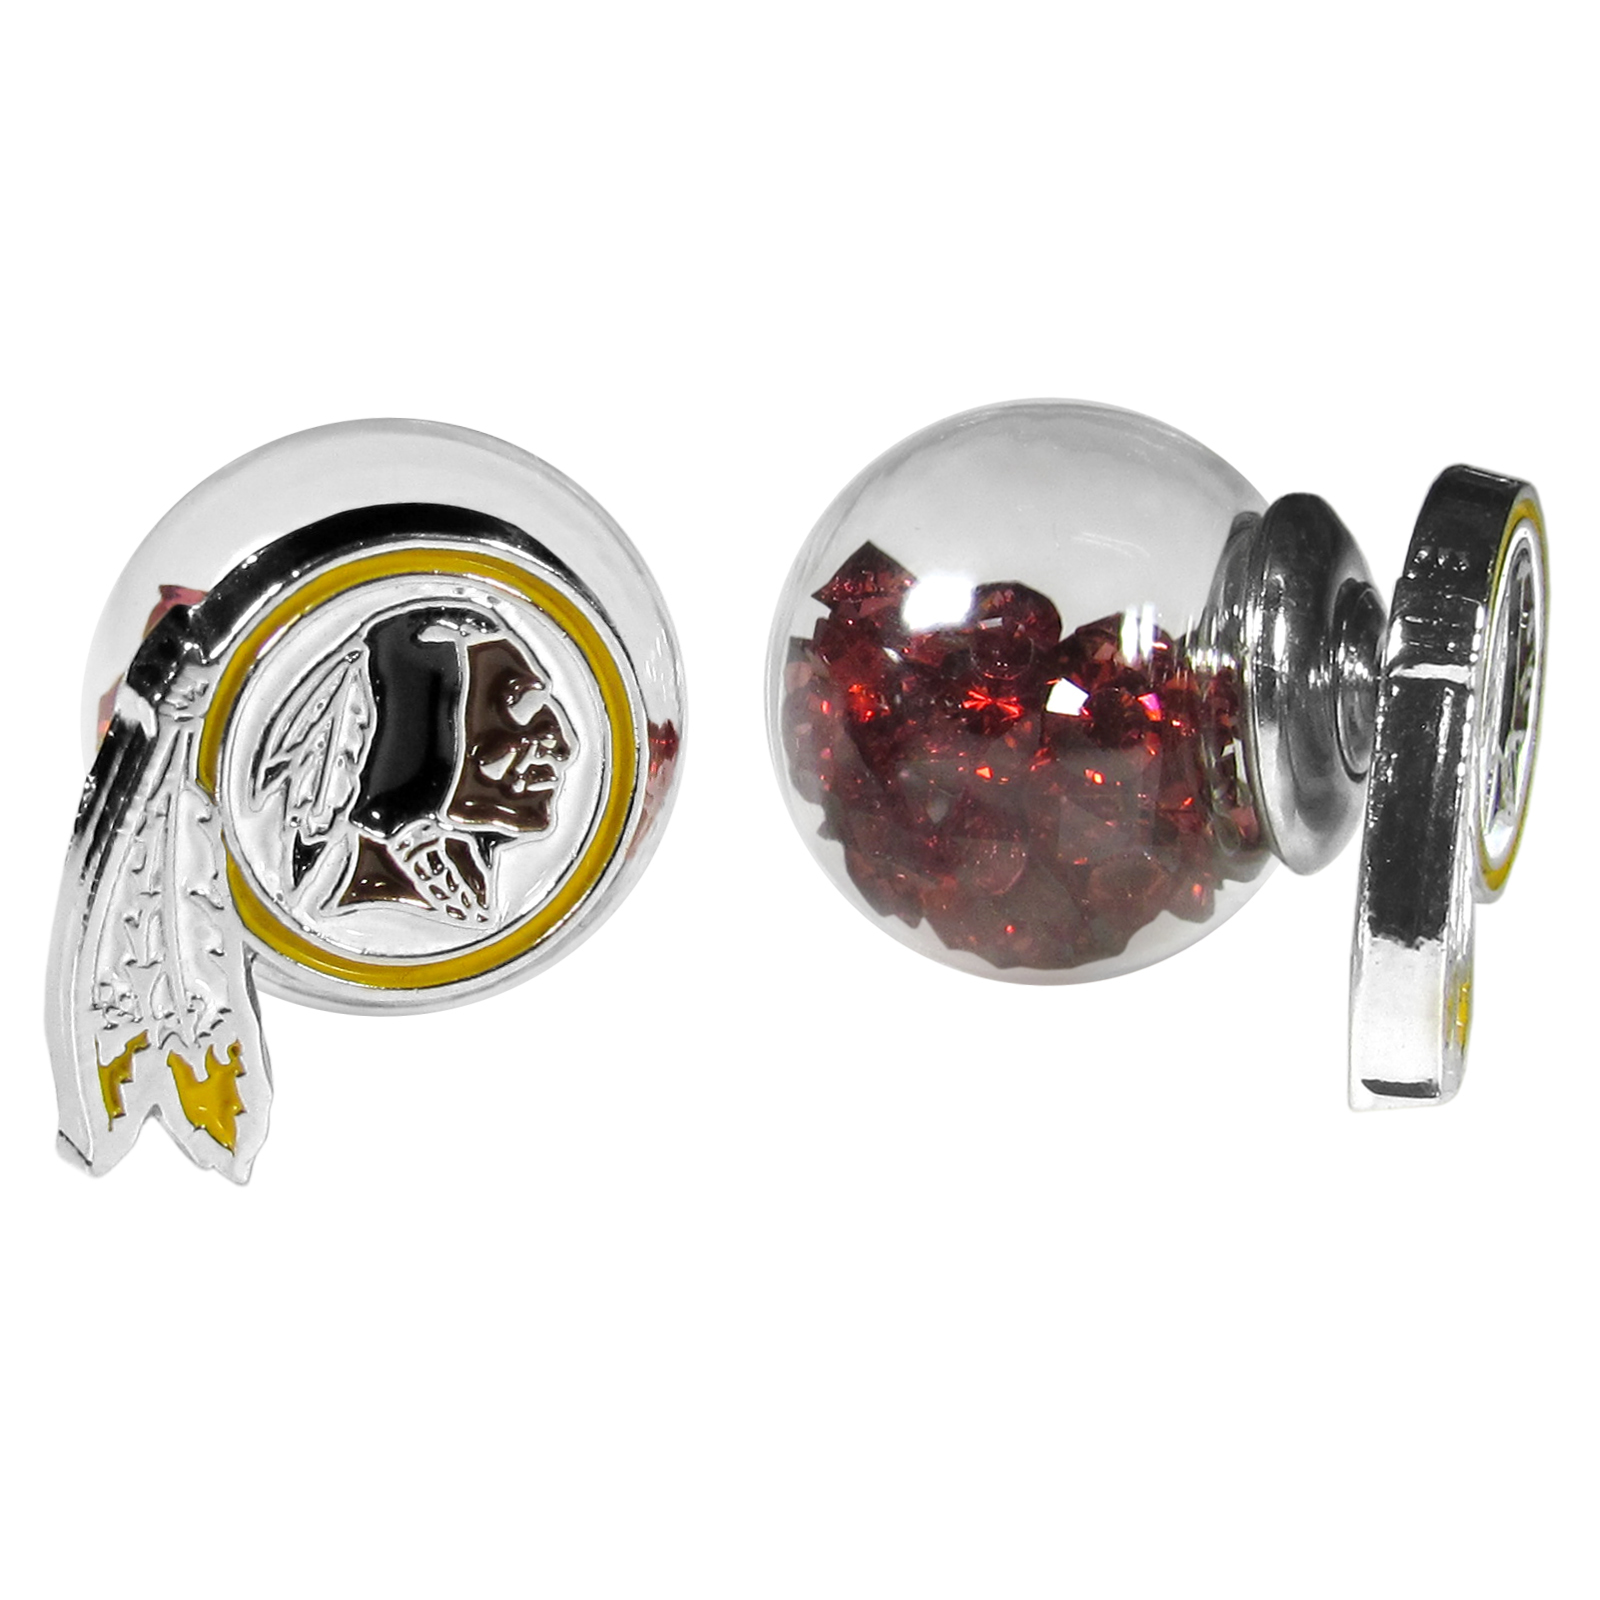 Washington Redskins Front/Back Earrings - Get in on one of the most popular trends in jewelry, front and back earrings! This must-have style is all of over the red carpets and we taken this contemporary look and paired it with your love of the Washington Redskins! The front of the earring is a sporty team logo and the back of these eye-catching earrings is a glass ball filled with colored crystal beads. This piece is perfect for a fashion-forward fan, with bold taste and trend-setting style.